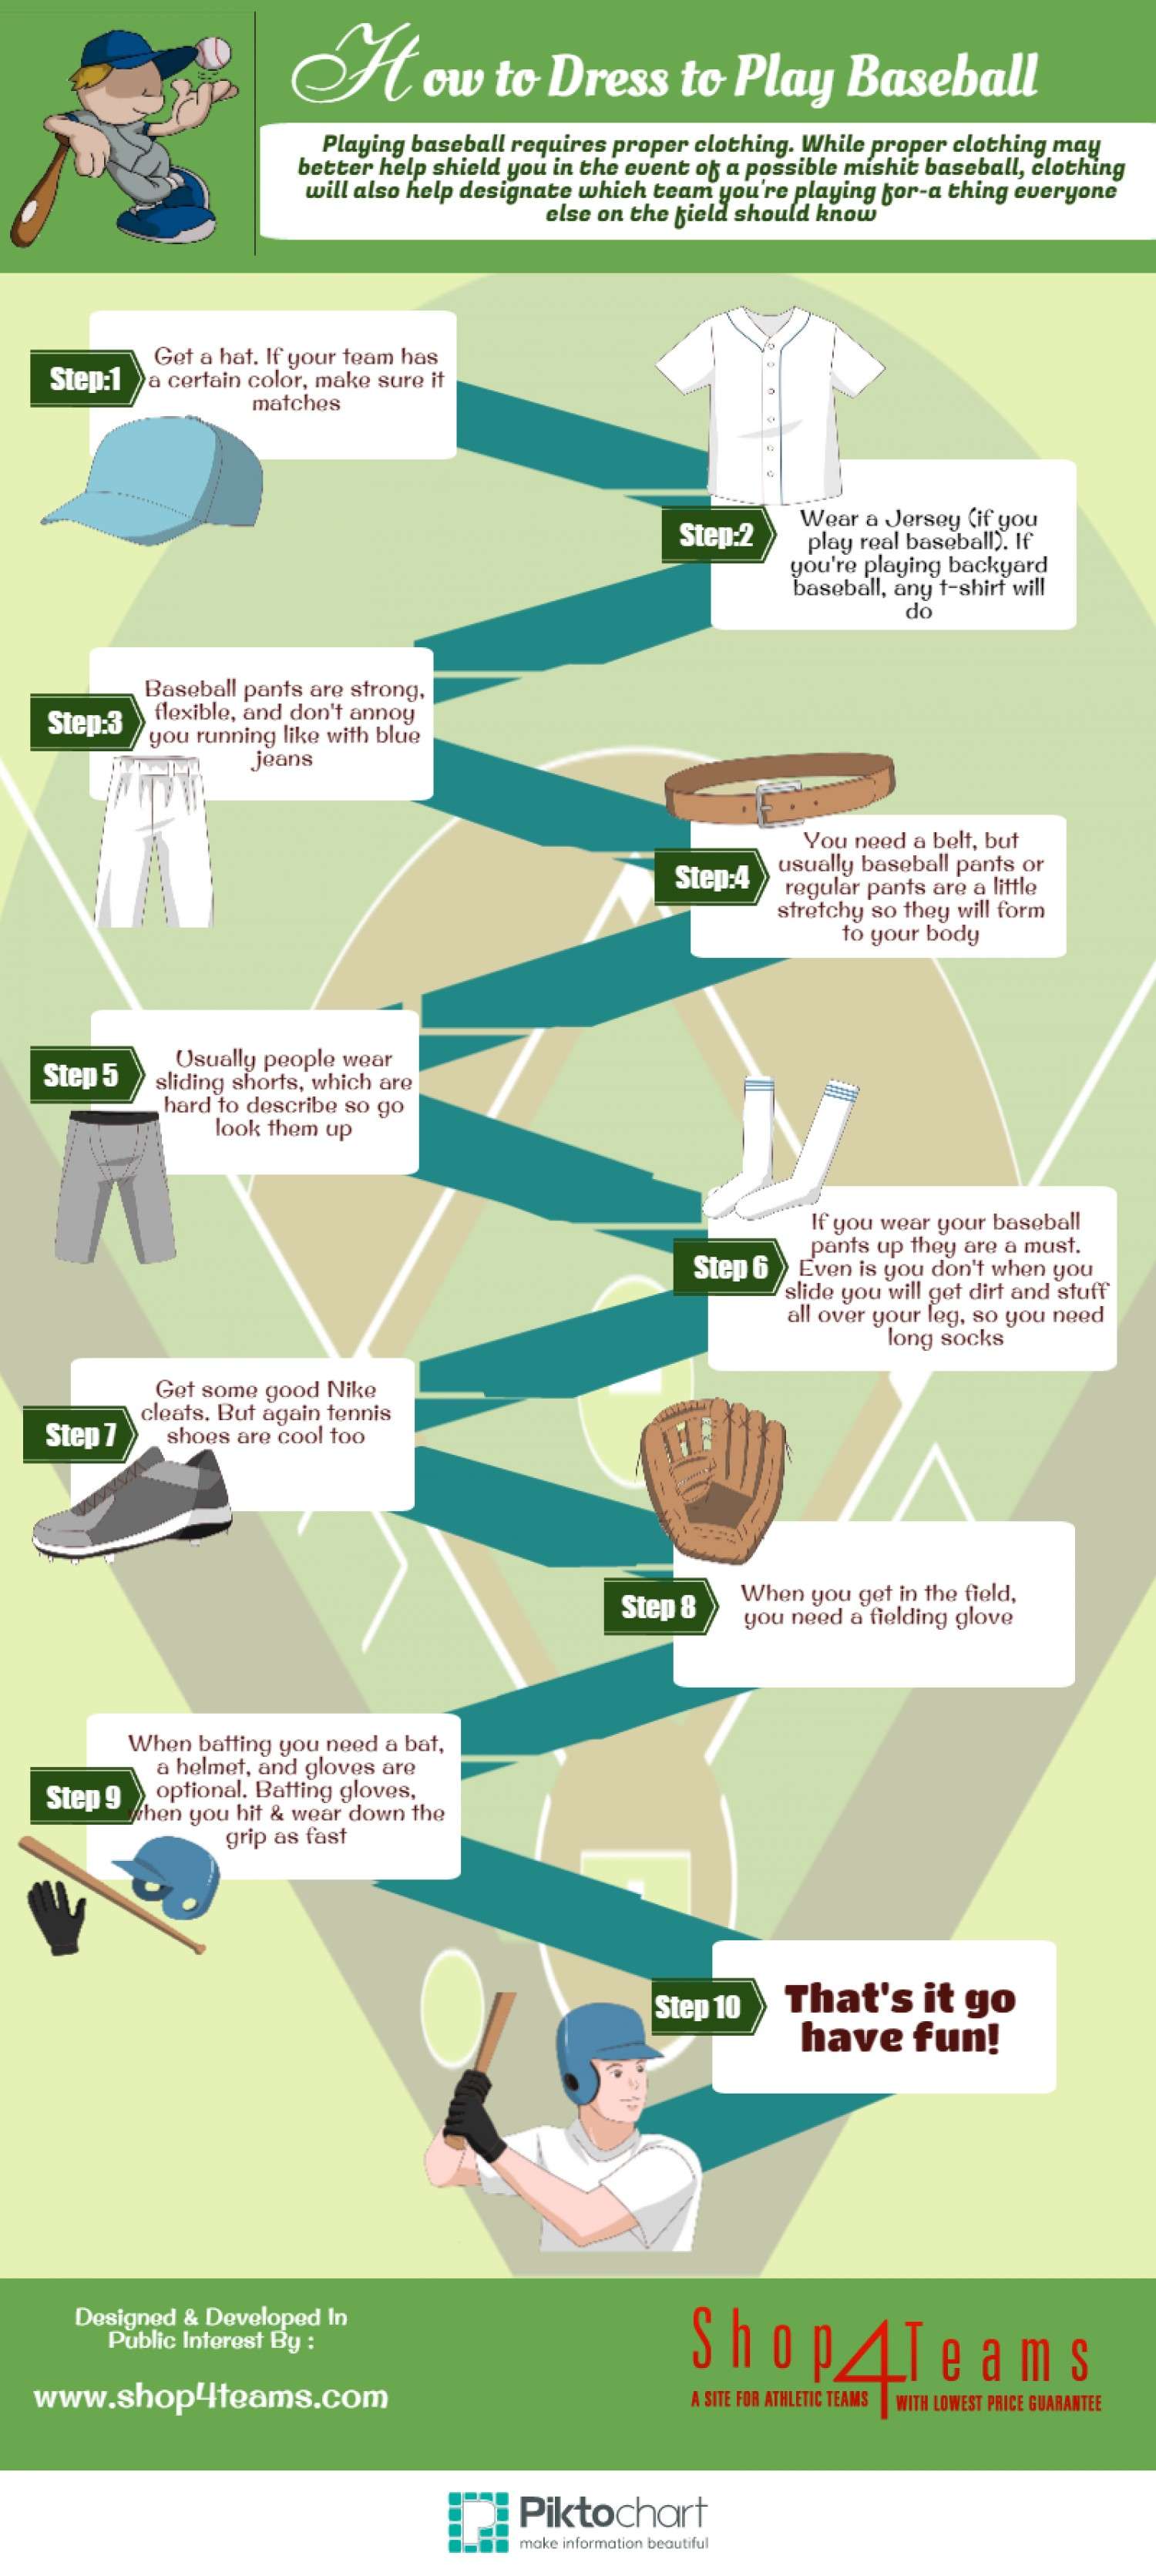 how-to-dress-to-play-baseball infographic